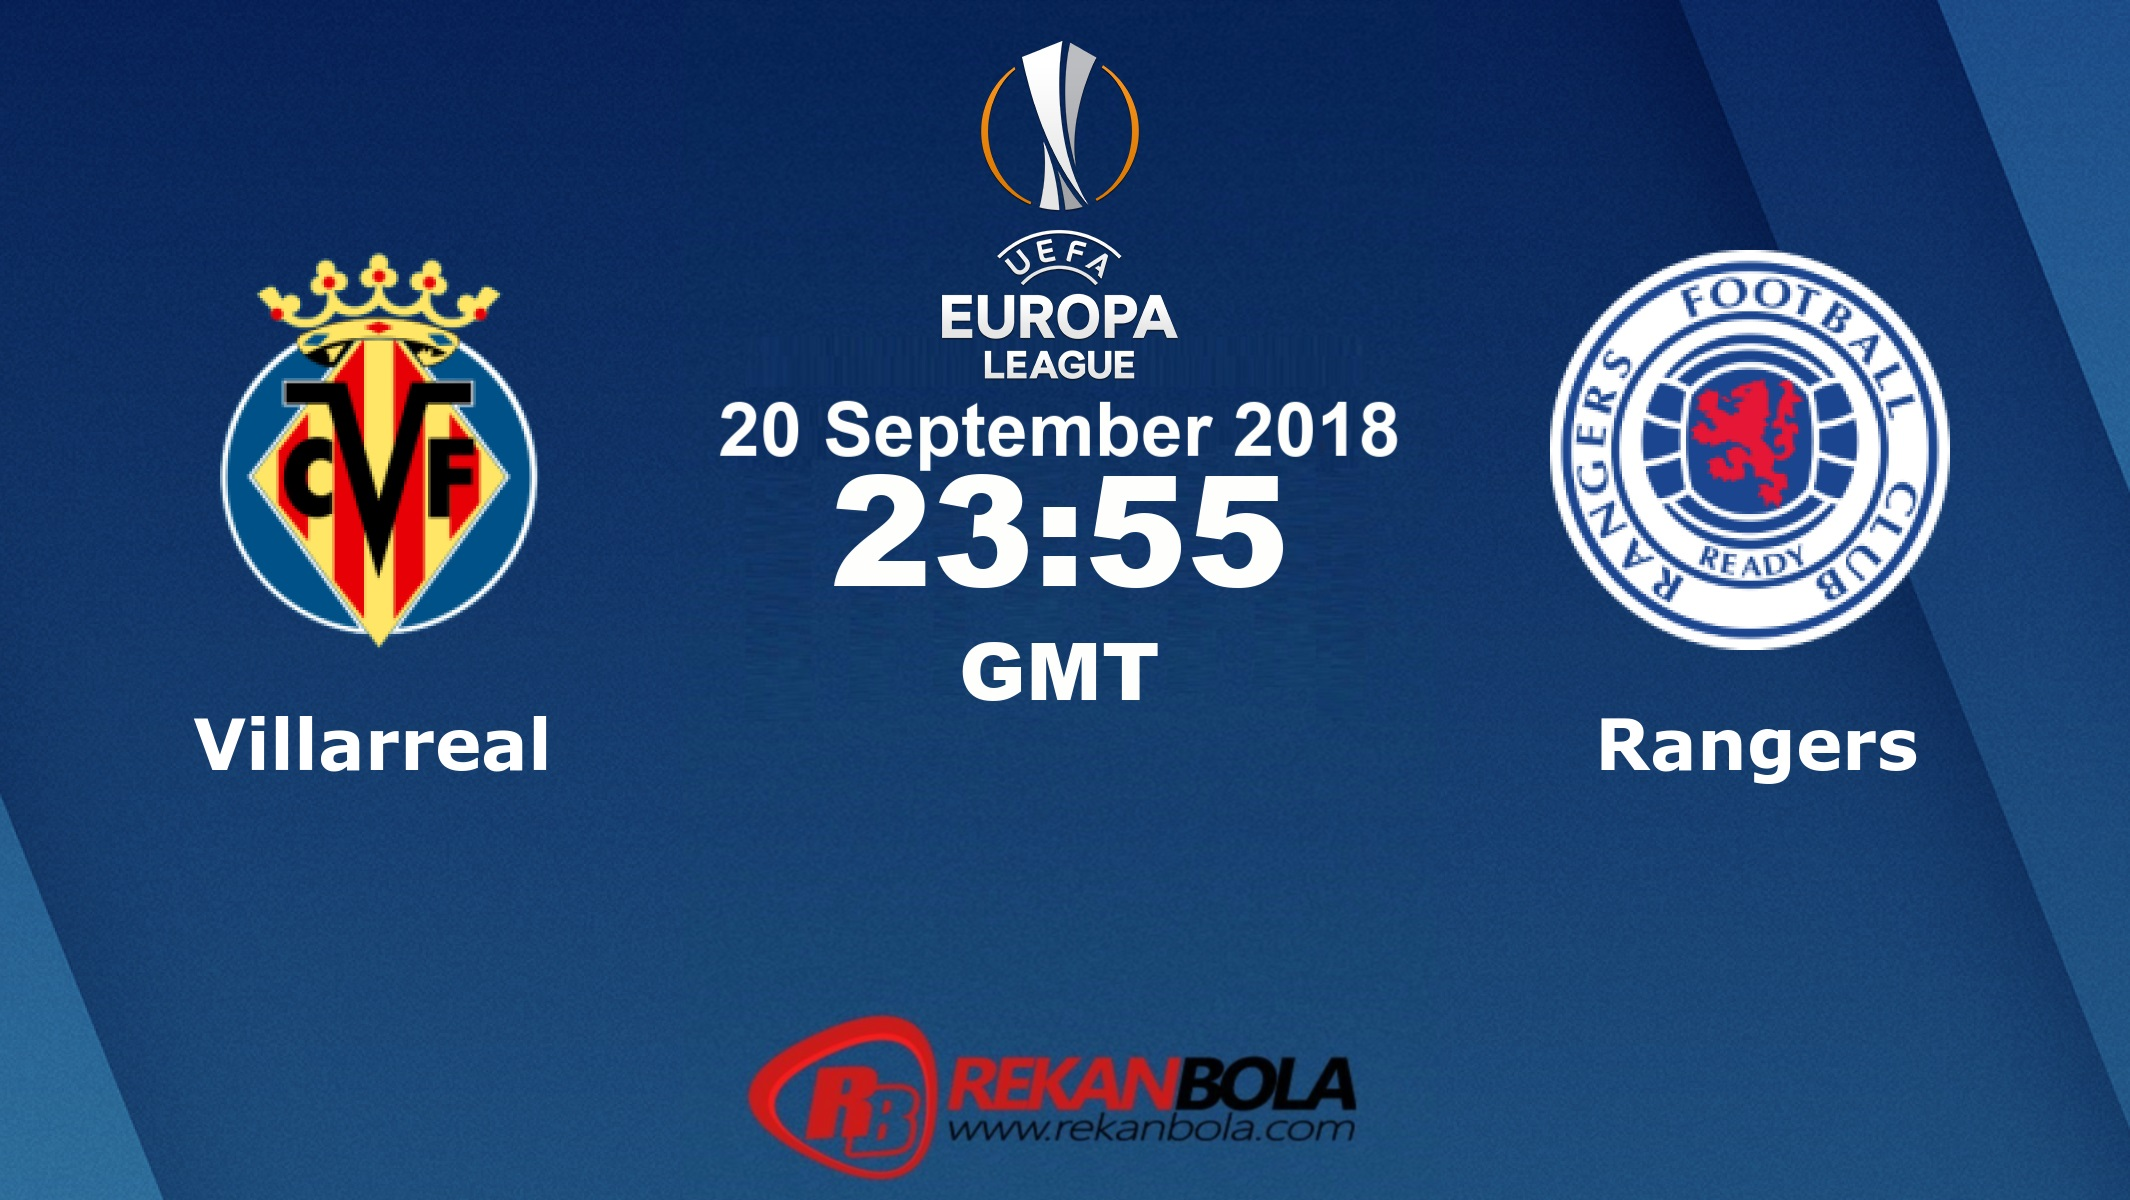 Nonton Siaran Live Streaming Villarreal Vs Rangers 20 September 2018